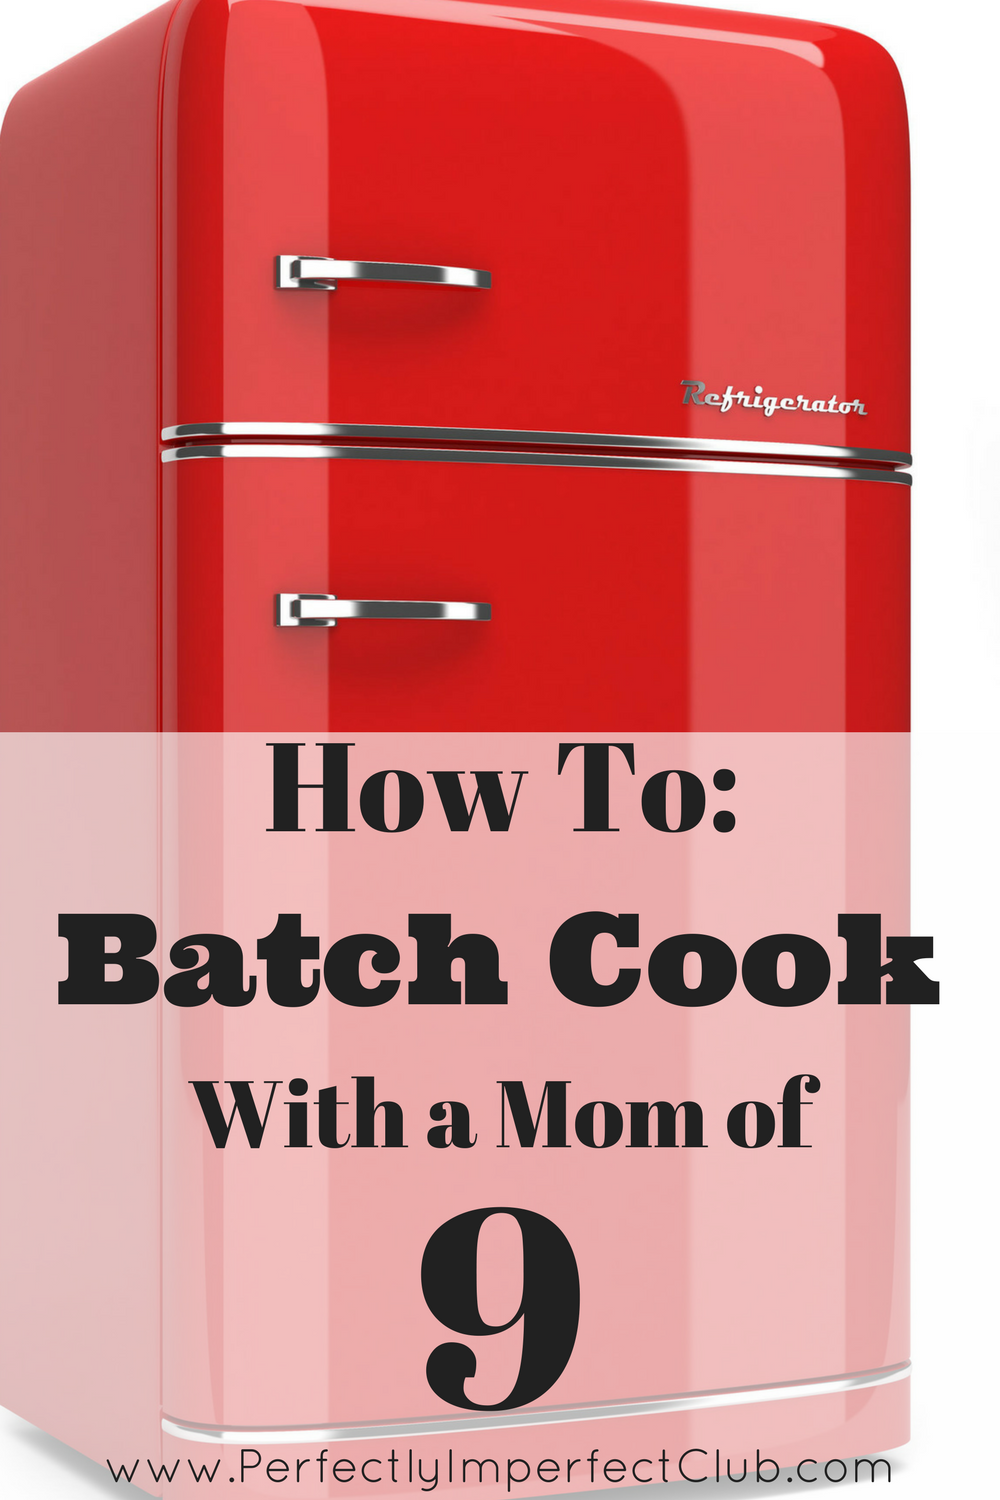 This Mom of 9 uses batch cooking to shave 15-30 minutes off of meal prep time!